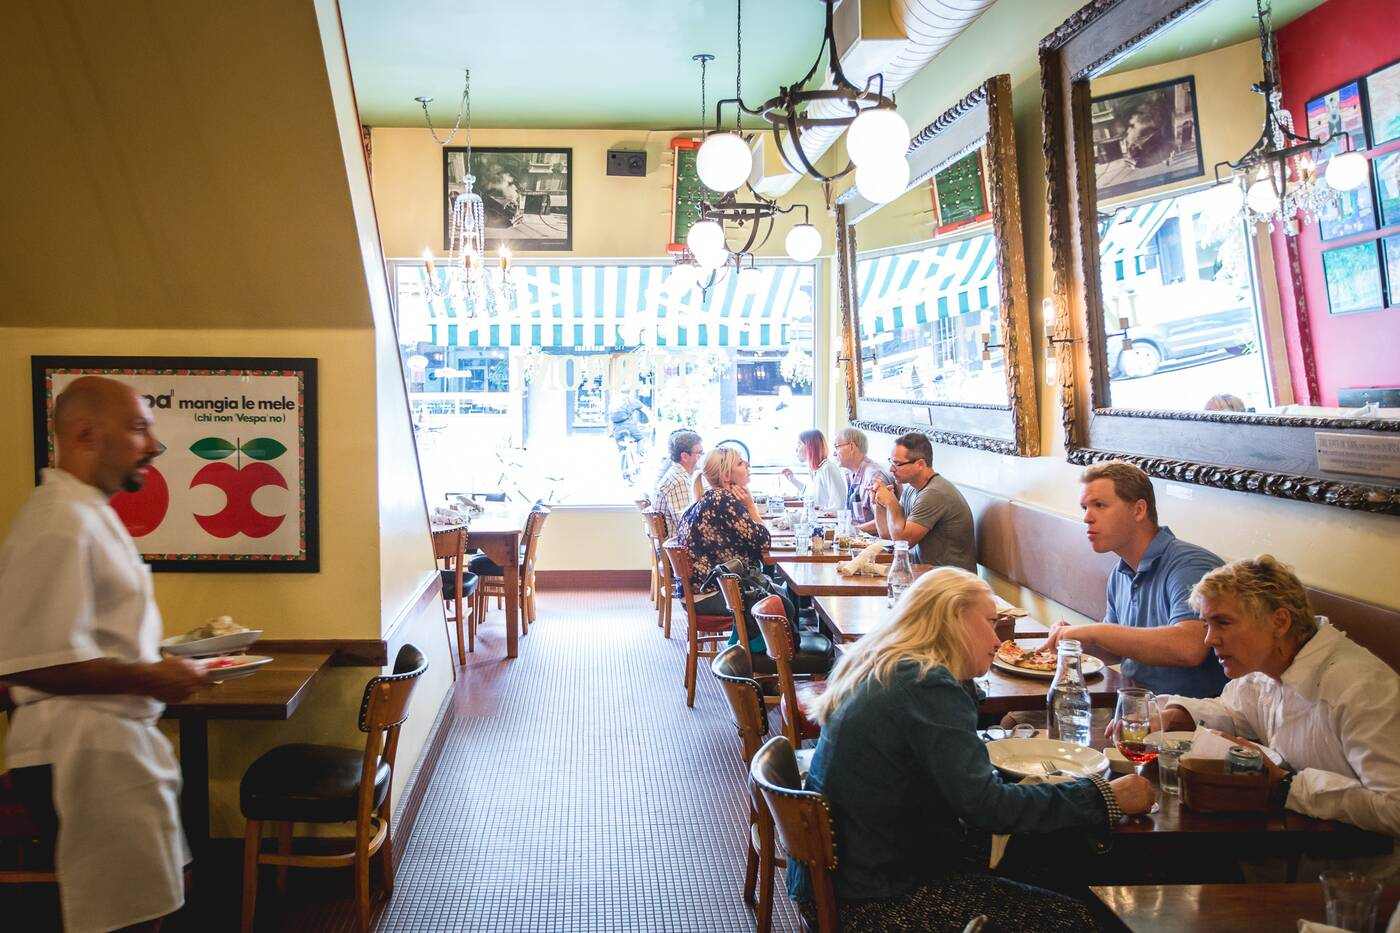 Terroni Is Among The Most Famous Names In Local Italian Restaurant Scene Photo By Jesse Milns